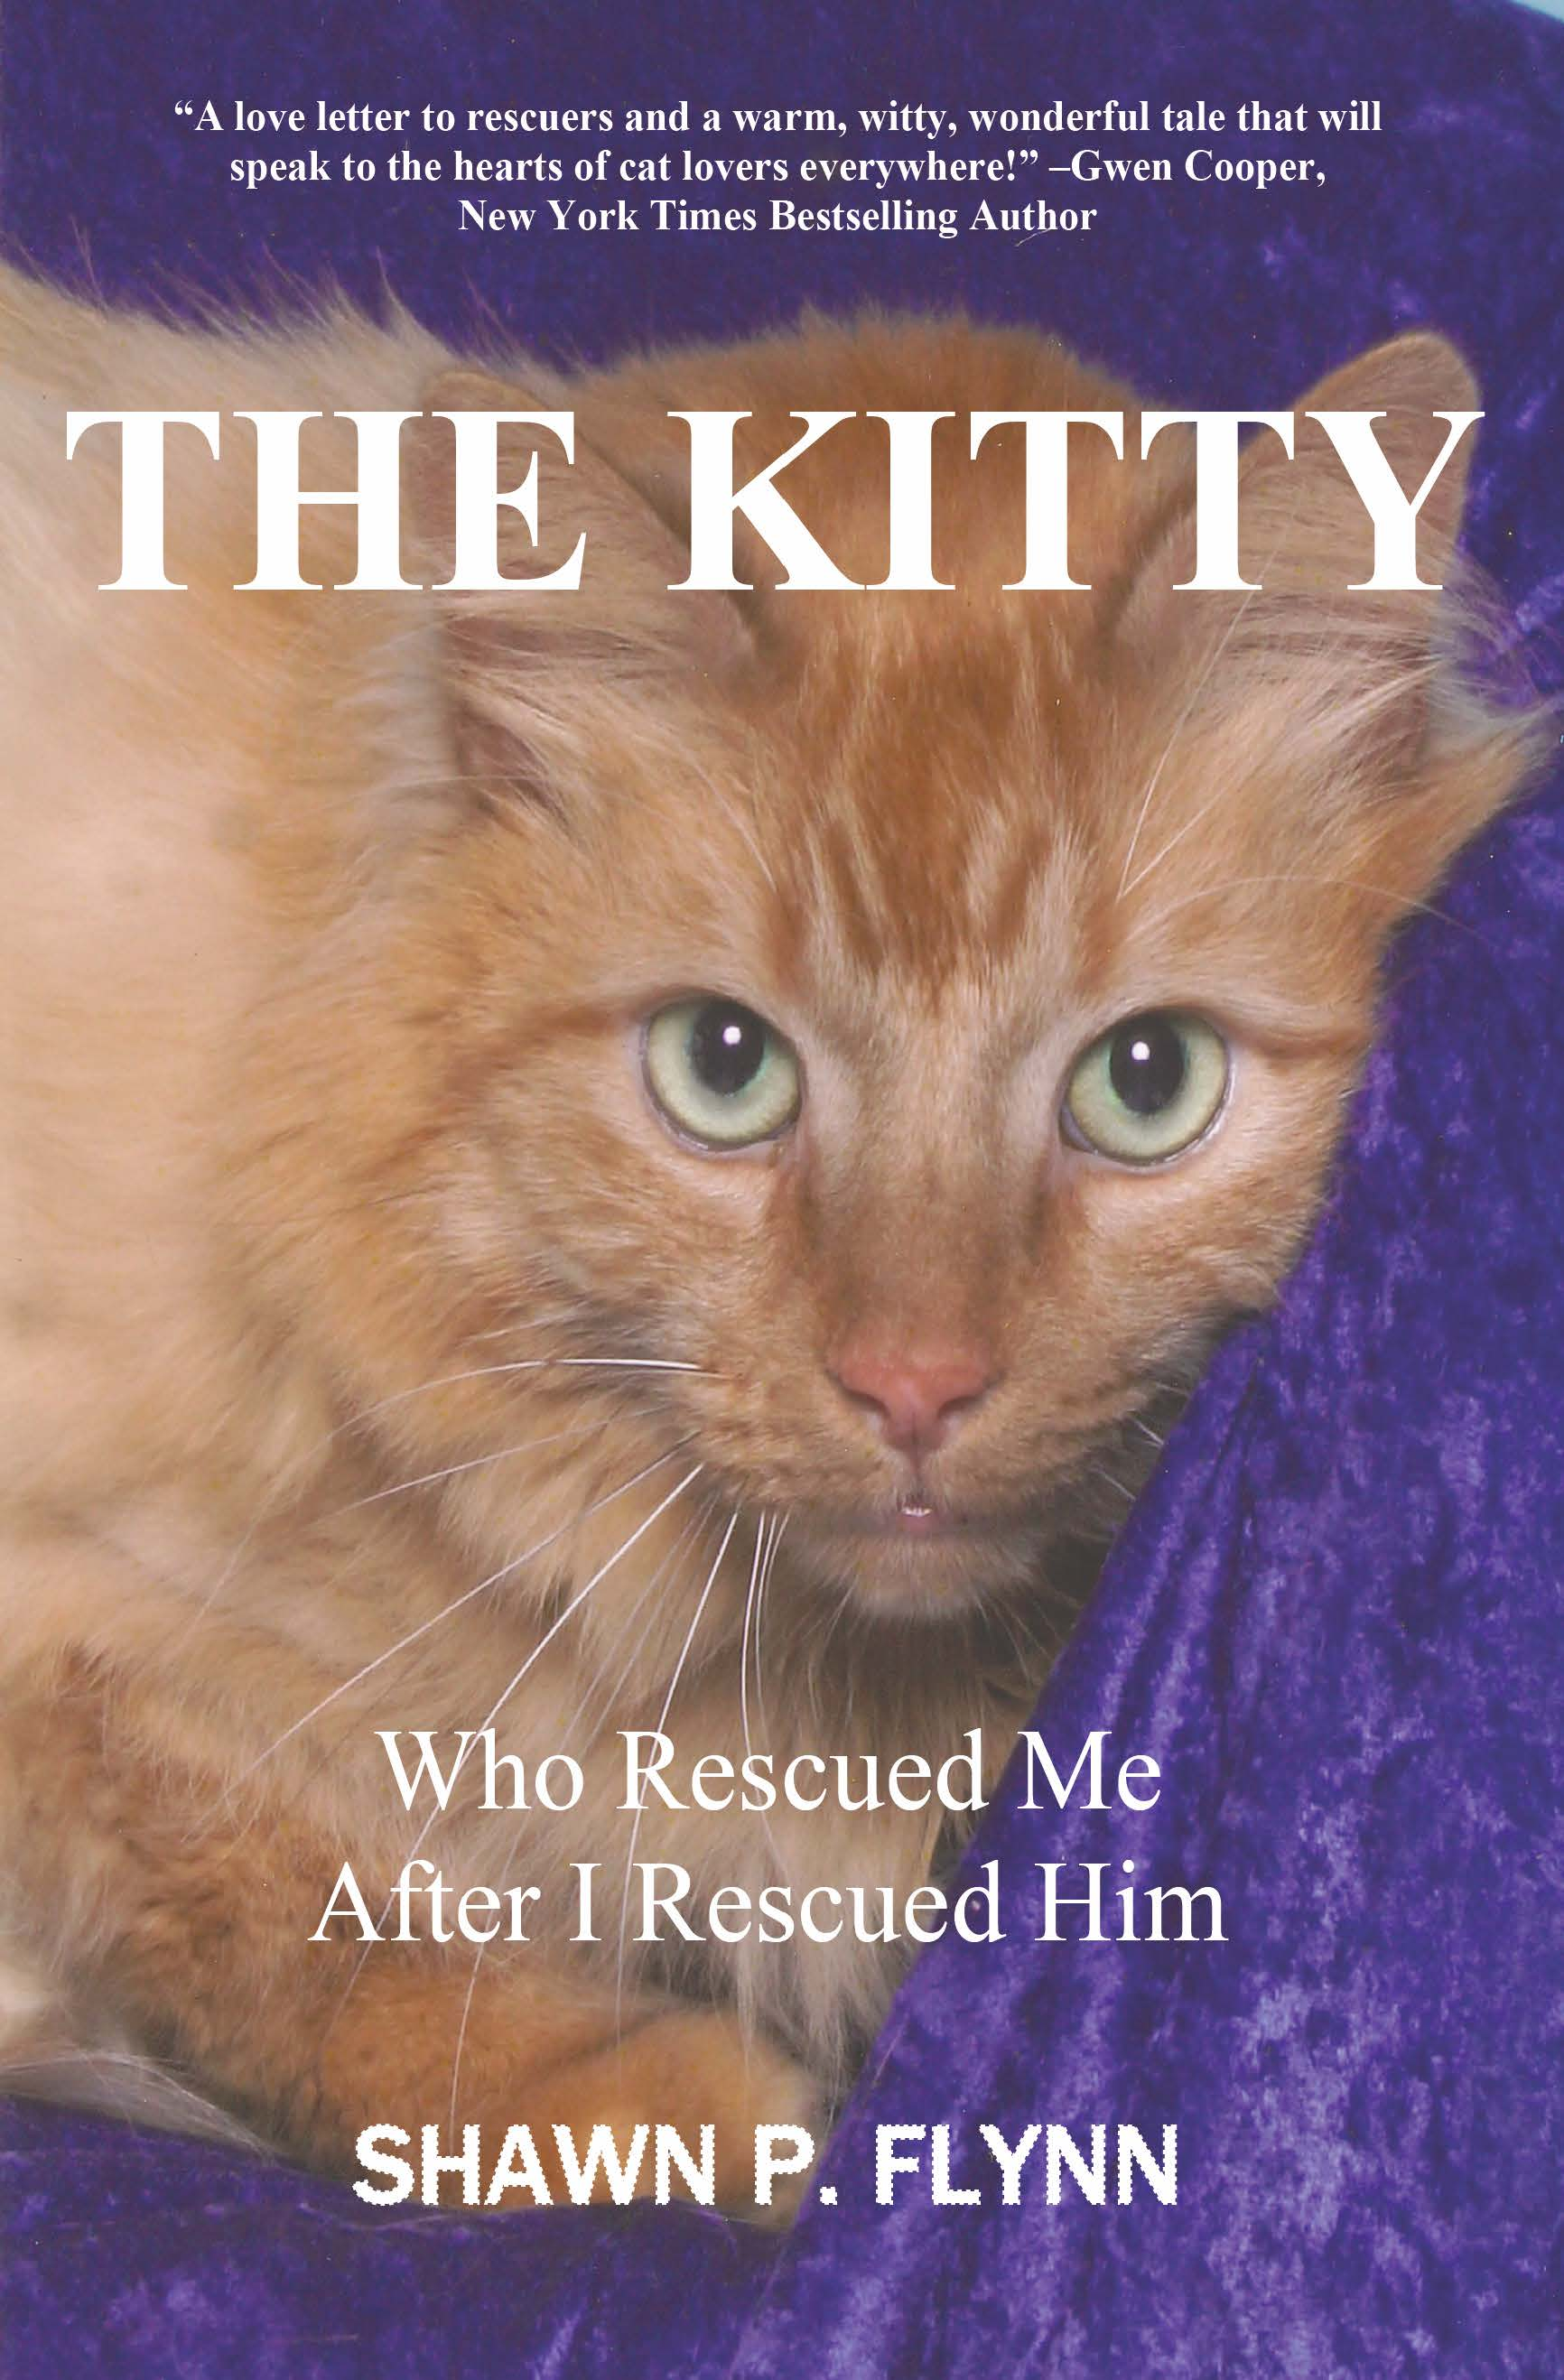 "SHAWN FLYNN AUTHOR: ""THE KITTY WHO RESCUED ME AFTER I RESCUED HIM""   SHAWNPFLYNN@YAHOO.COM   HTTPS://WWW.AMAZON.COM/KITTY-WHO-RESCUED-AFTER-HIM/DP/0998788007/REF=DP_OB_TITLE_BK"